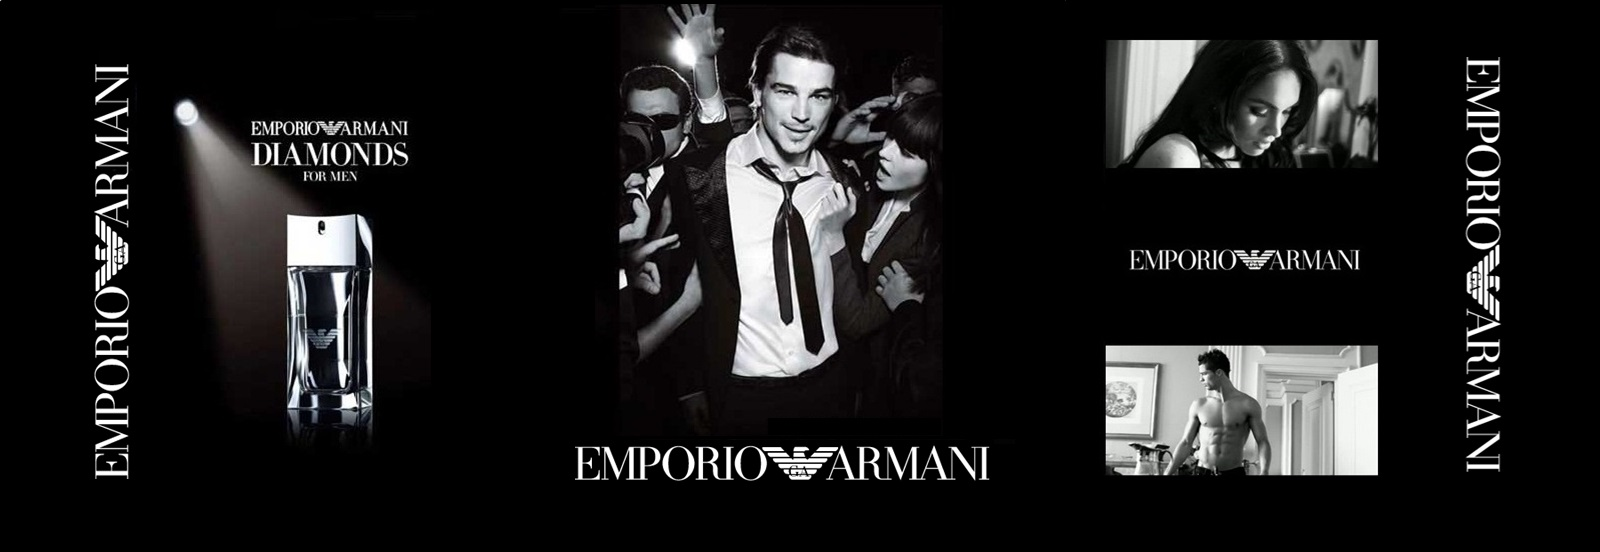 shop-dong-ho-emporio-armani-store-vietnam-chinh-hang-armanishop-2